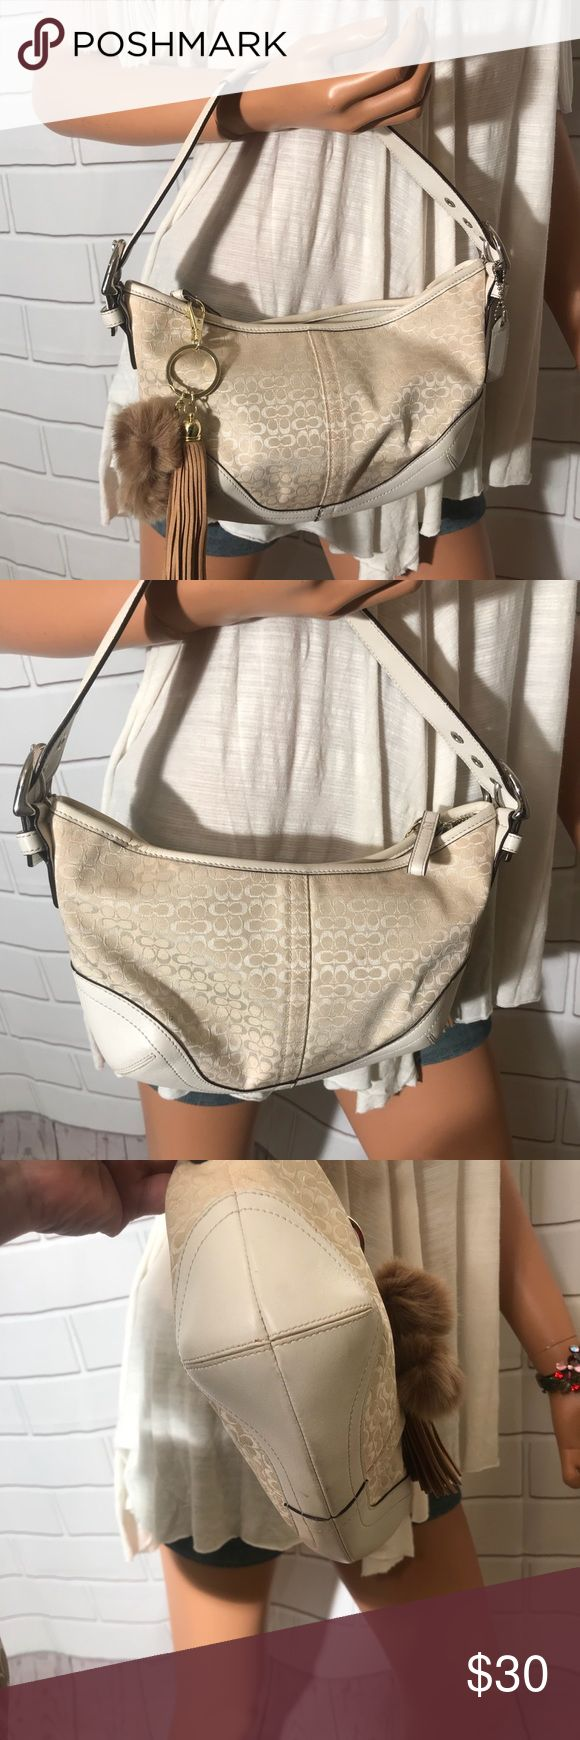 Classic Coach Hobo Signature Bag Color cream Color for 2018 Zipper closure  Include Coach hangtag Include free Pom Pom Inside brown lining Inside zipper pocket Excellent preowned condition   Thank you for looking Coach Bags Satchels